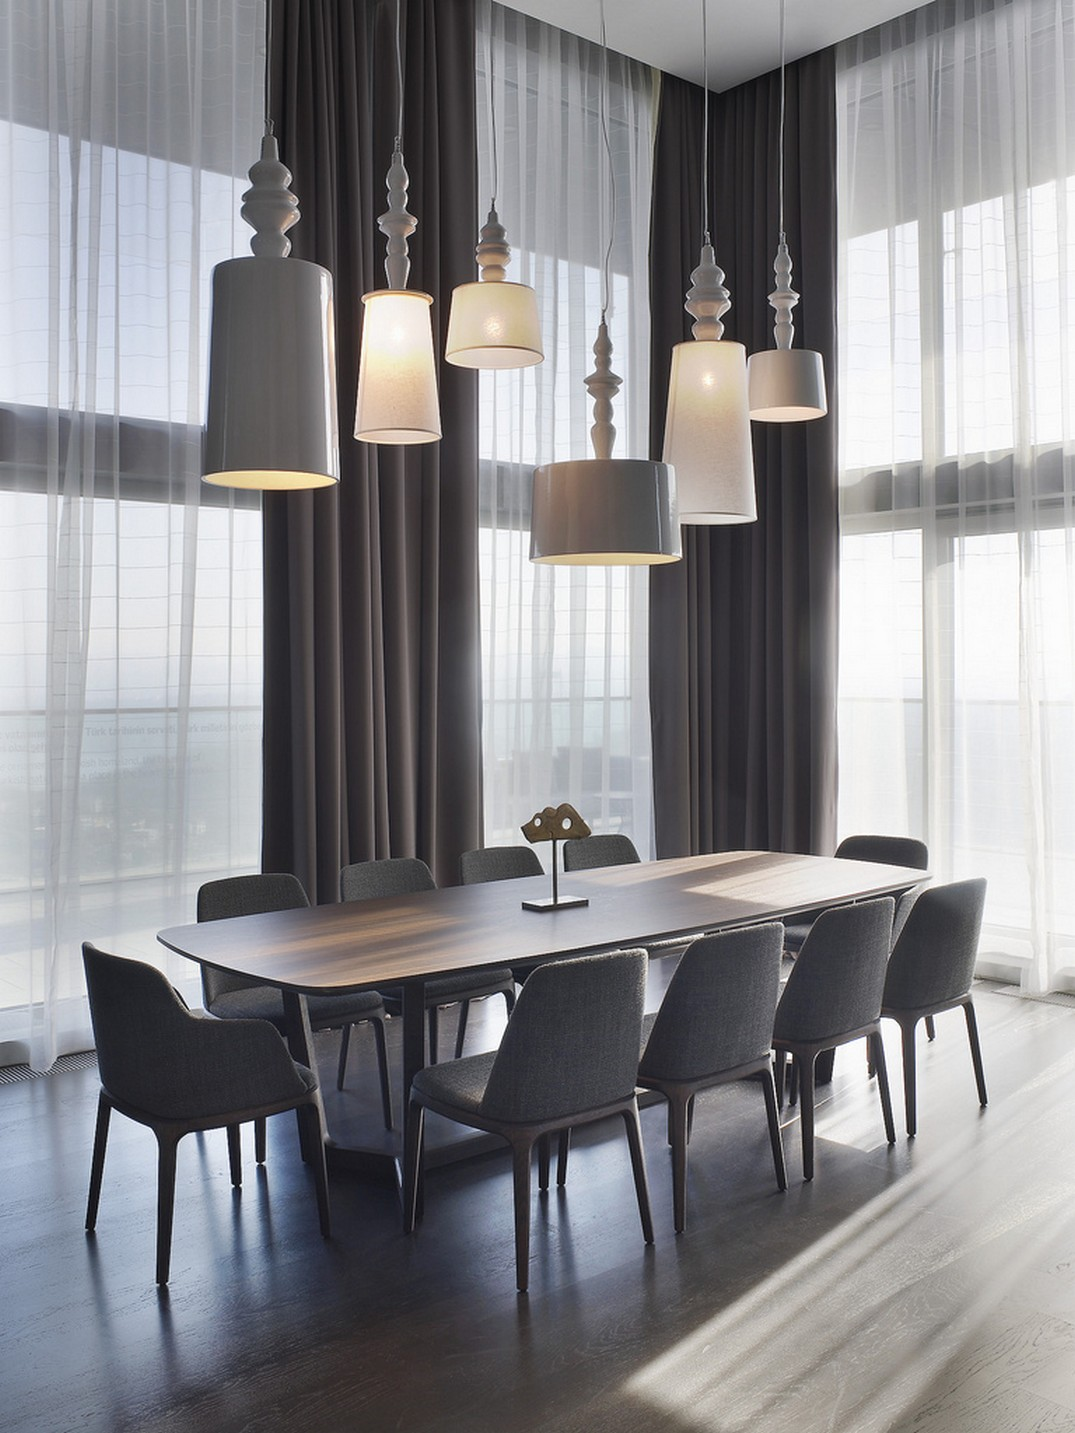 Marvelous Composition Idea of Dining Room You Need To See